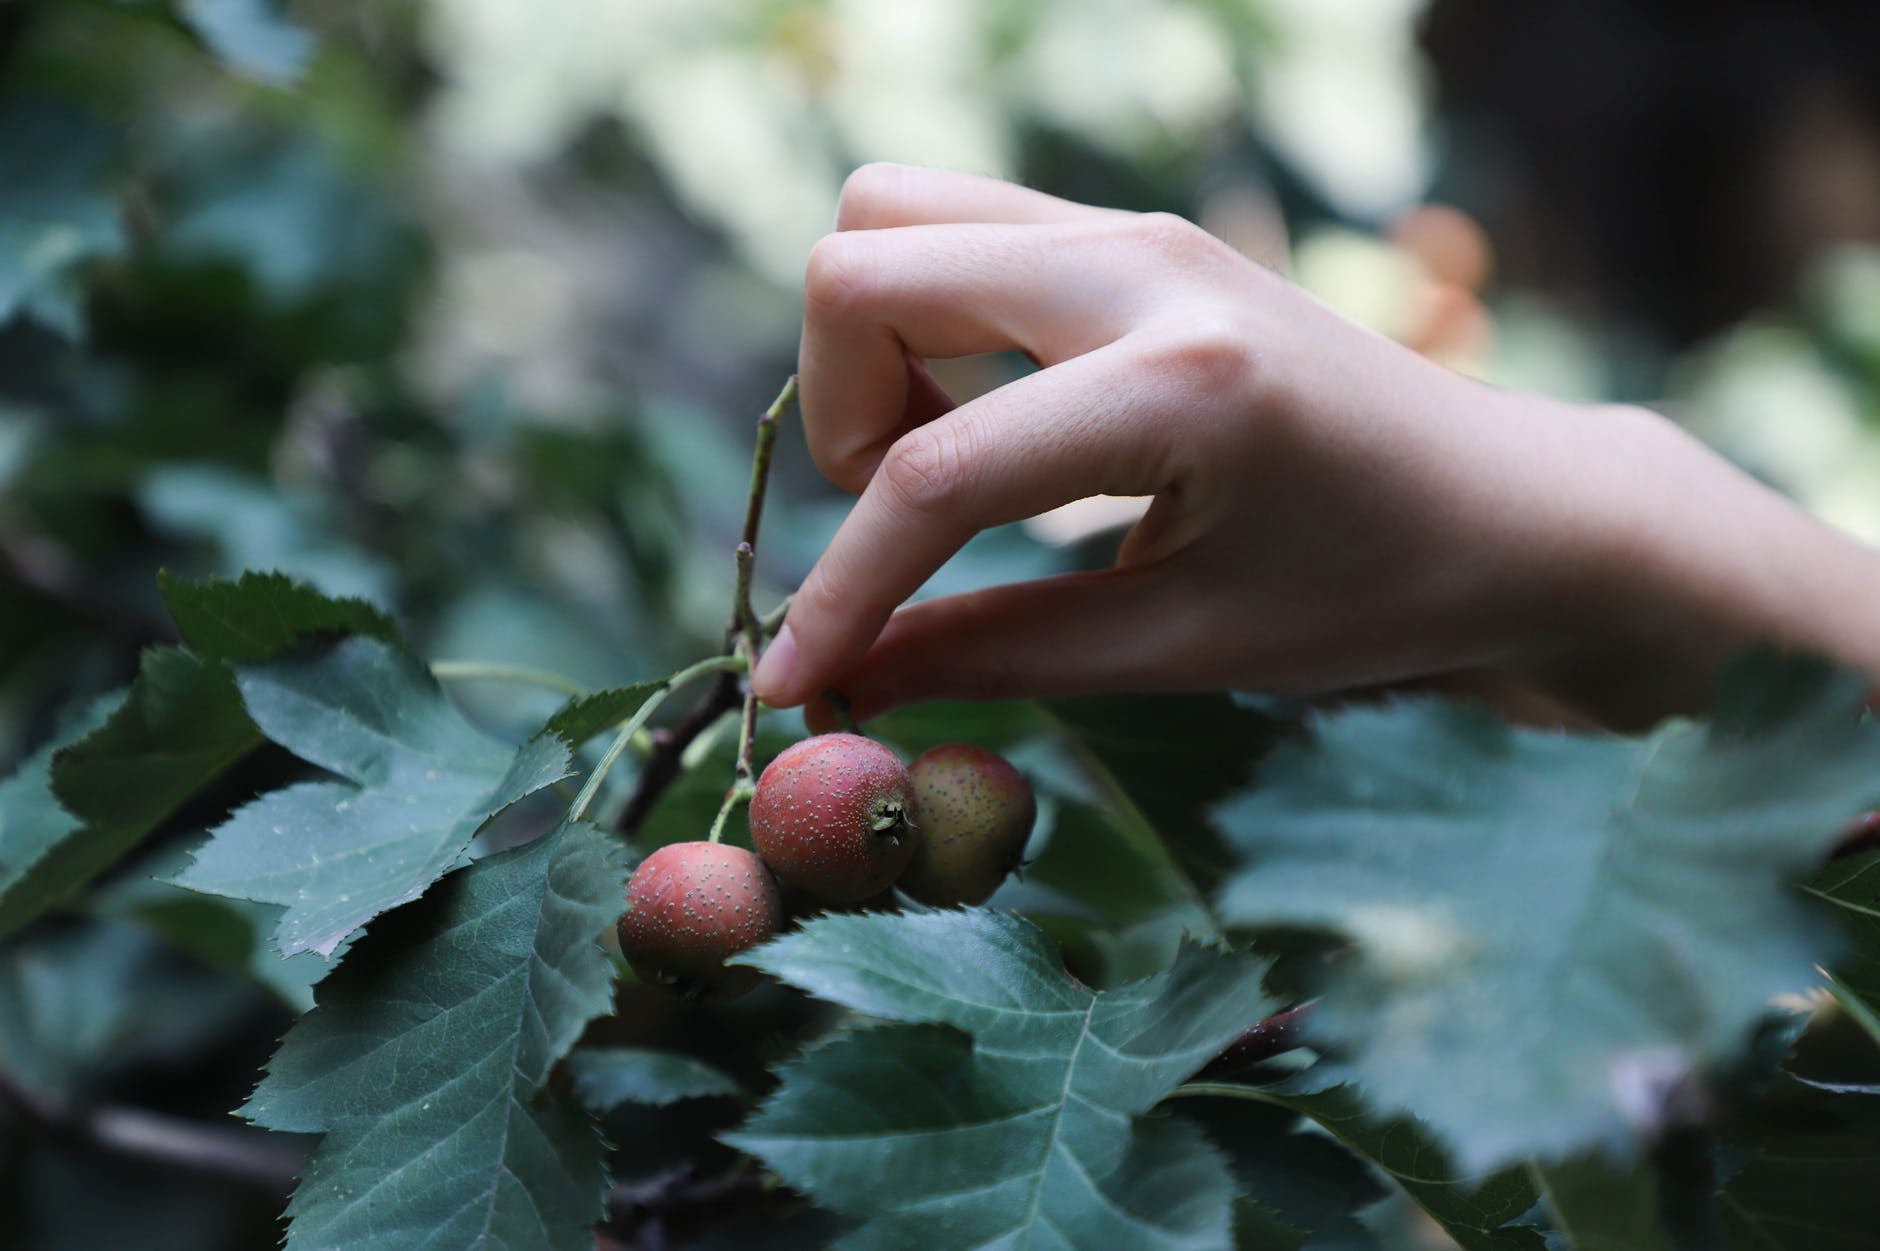 More calls to clean up fruit picking